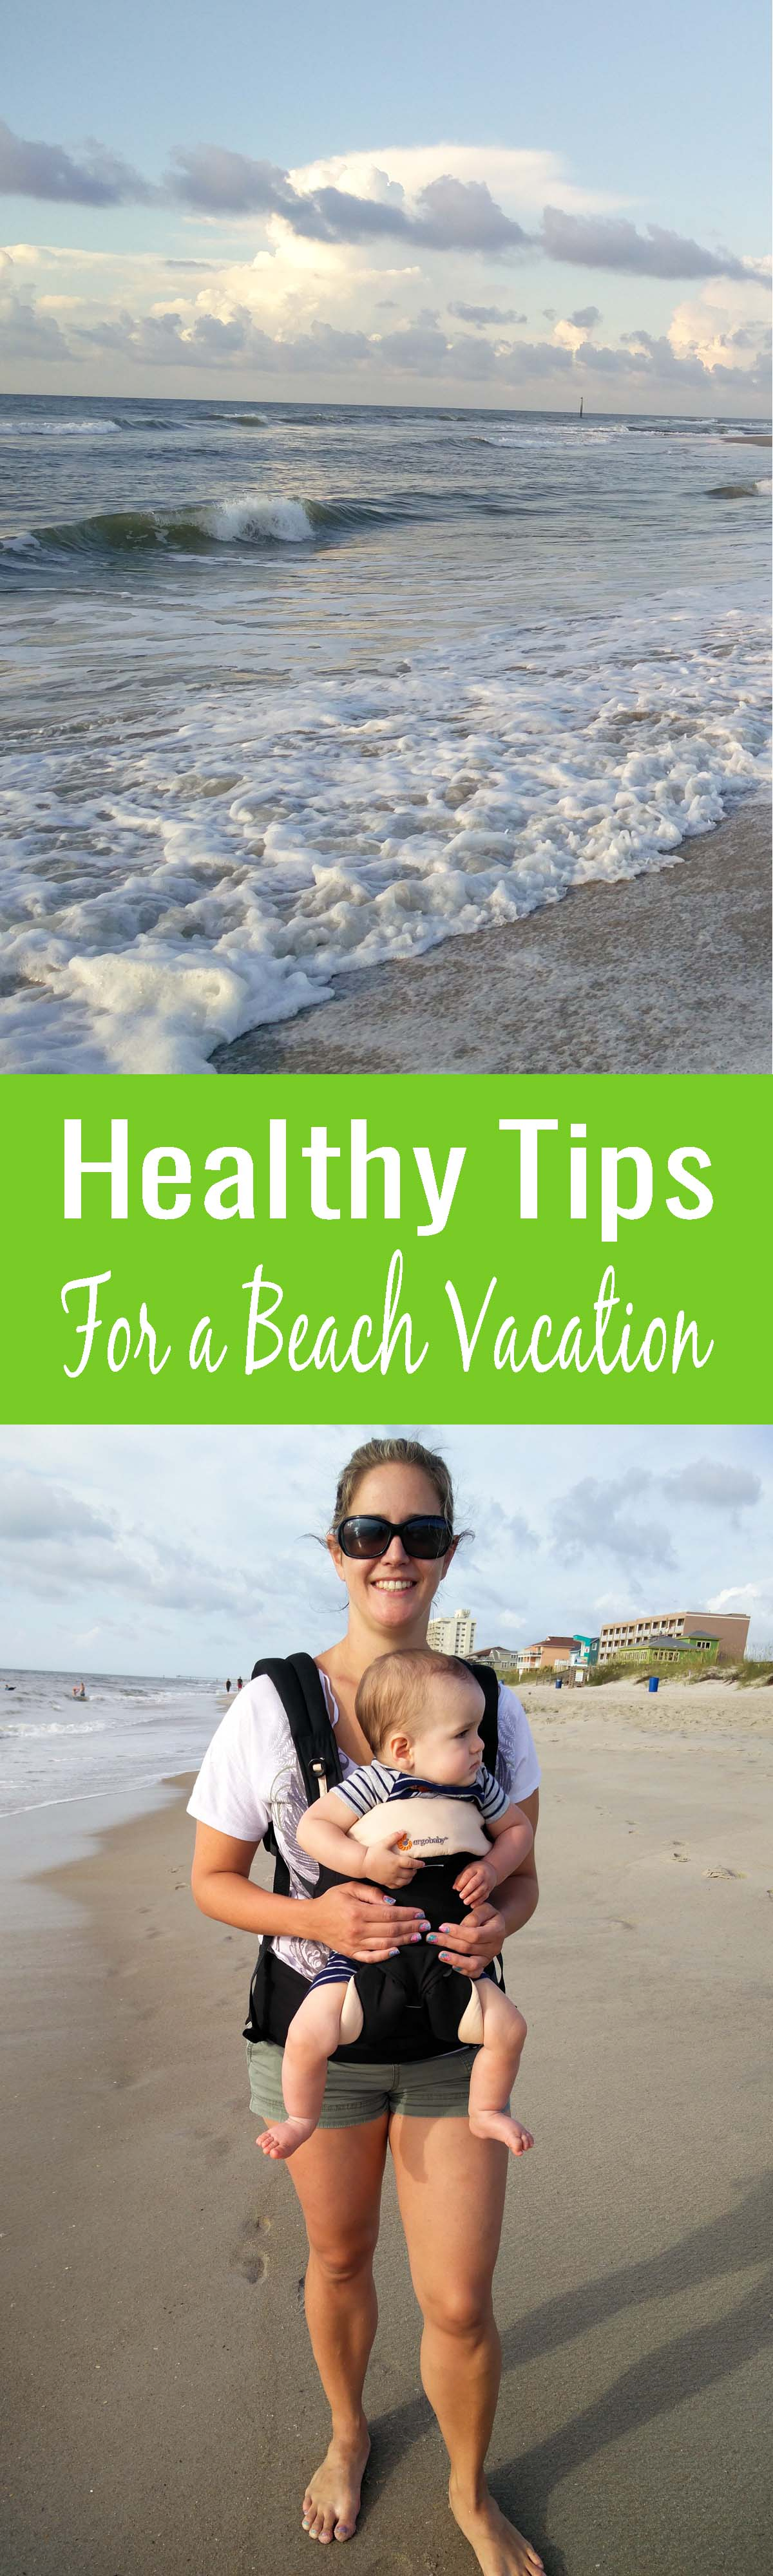 Easy to implement tips for staying healthy on a beach vacation for those of us who dread the word diet and exercise on their vacation. Yes, you can enjoy your beach vacation without gaining weight!